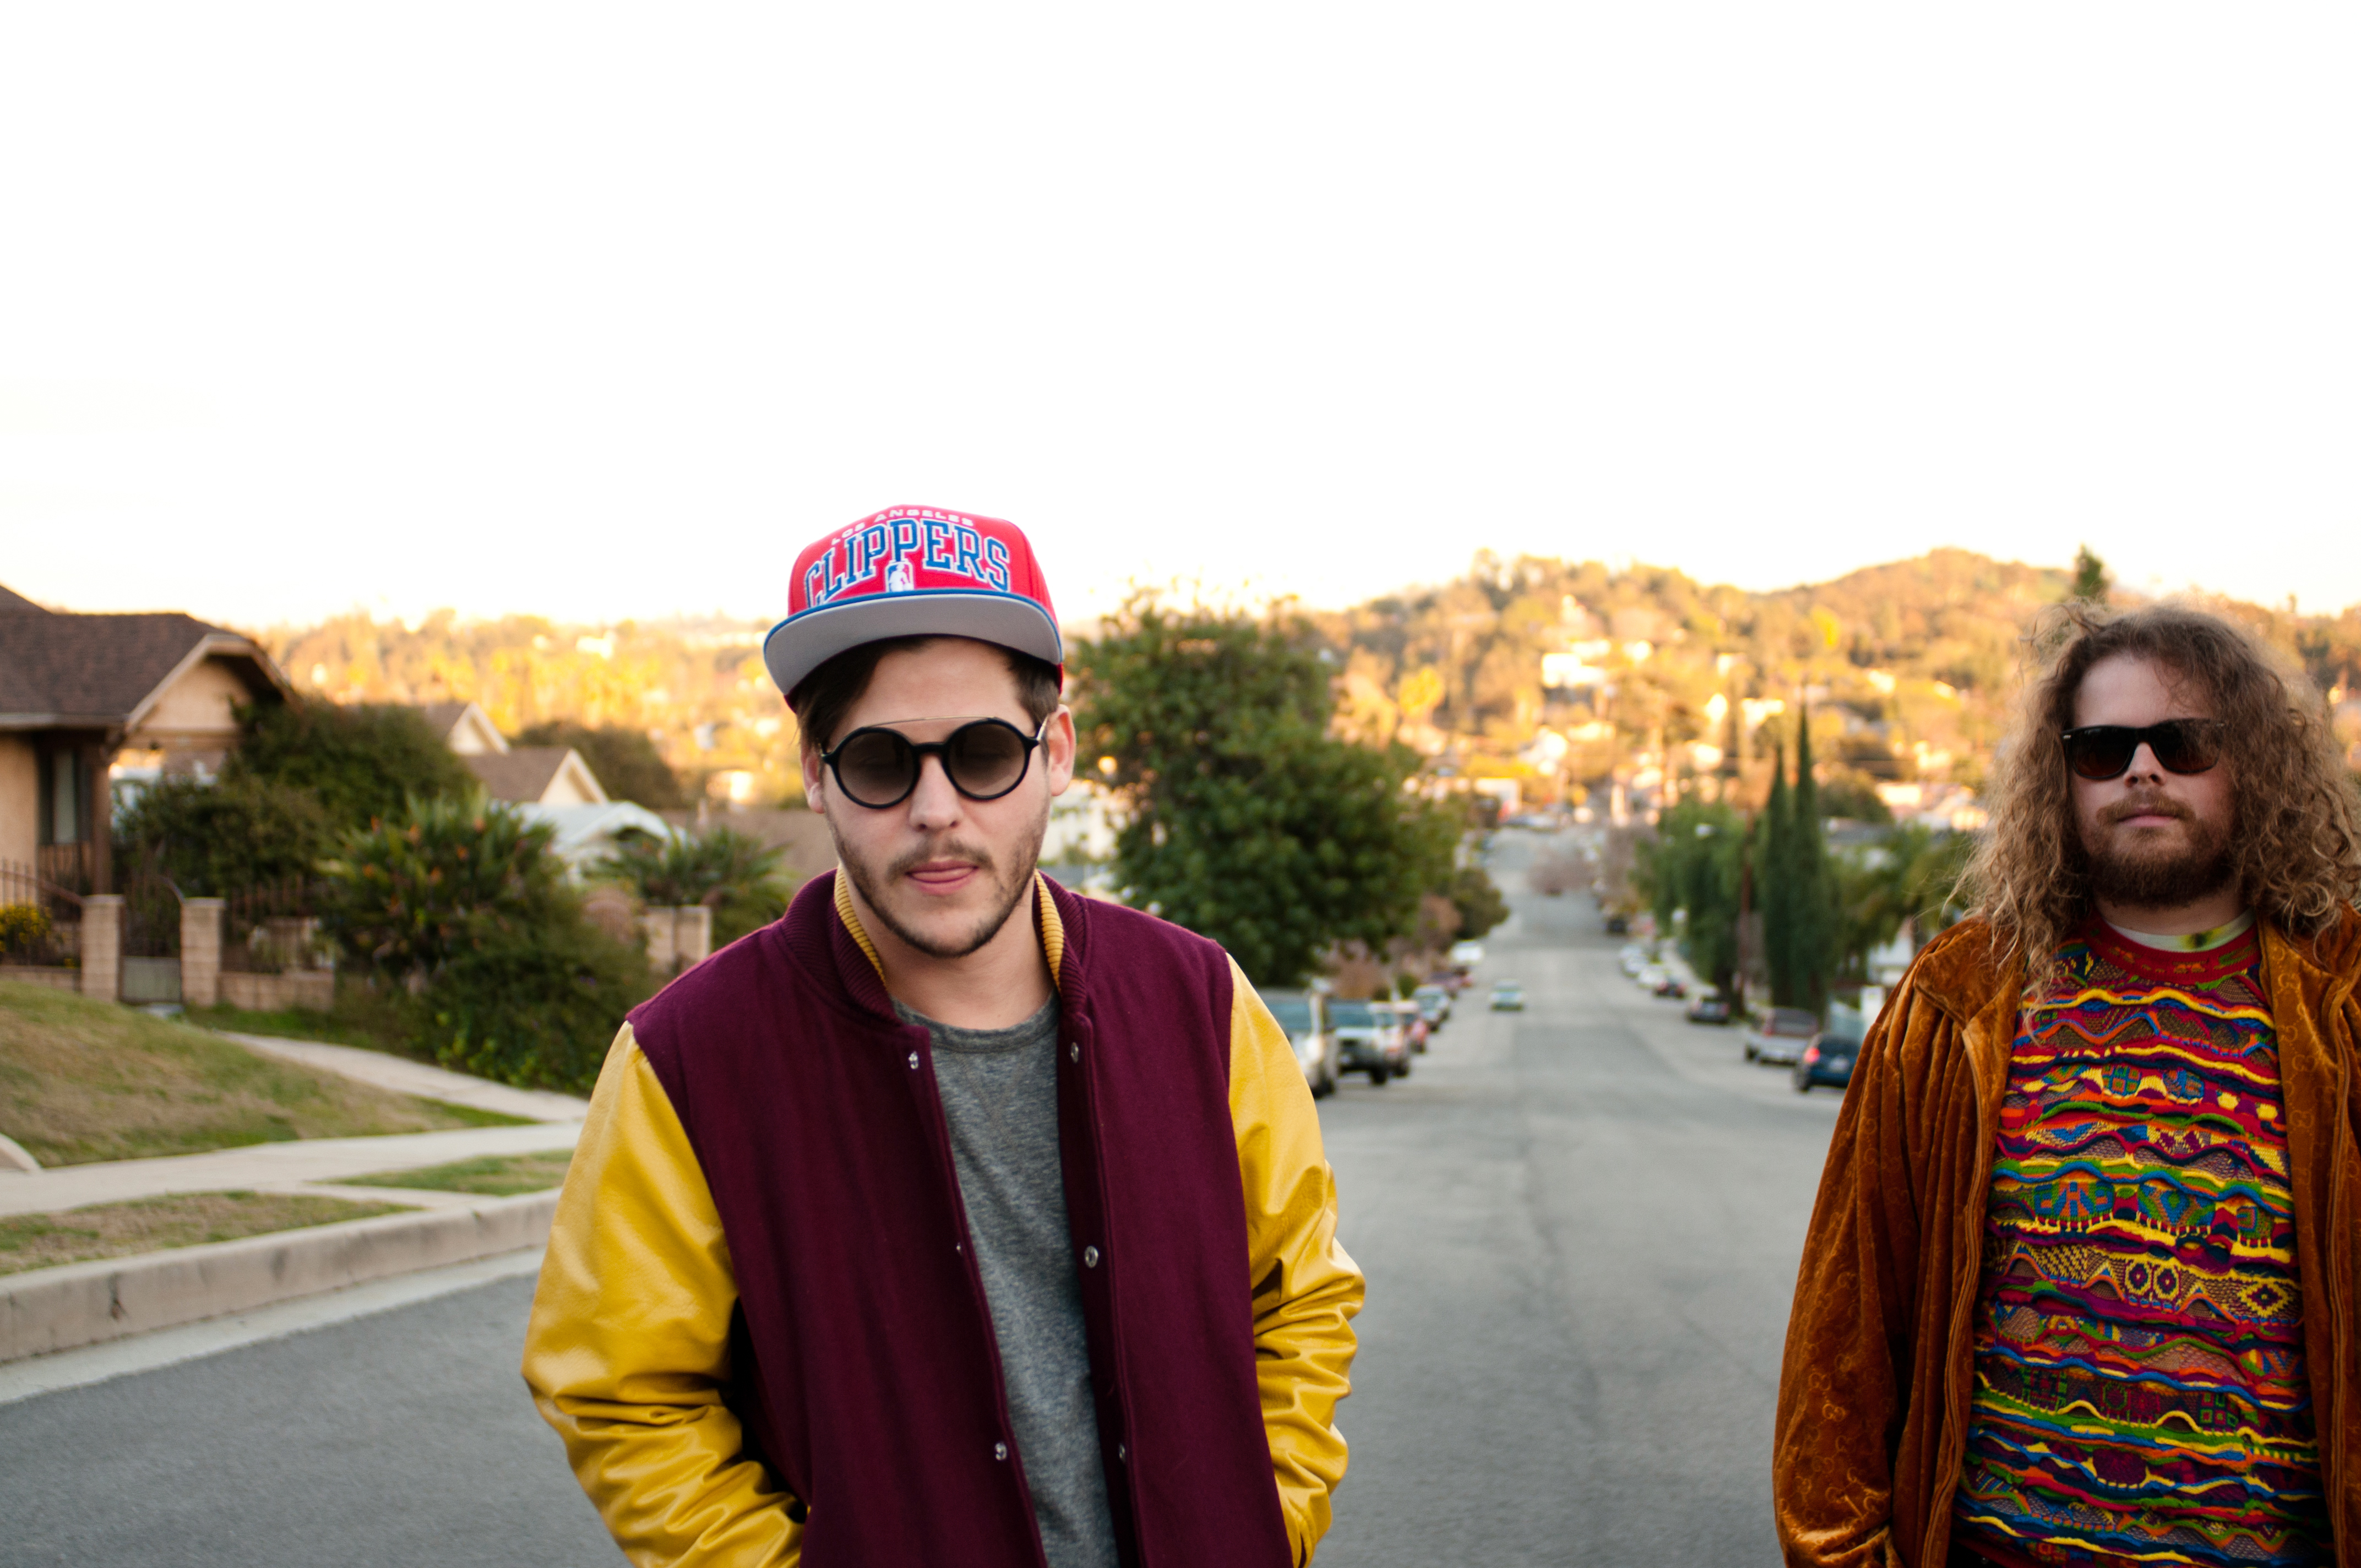 """After announcing their fifth studio album, V, Wavves is back to share one of the album's many highlights """"Flamezesz"""